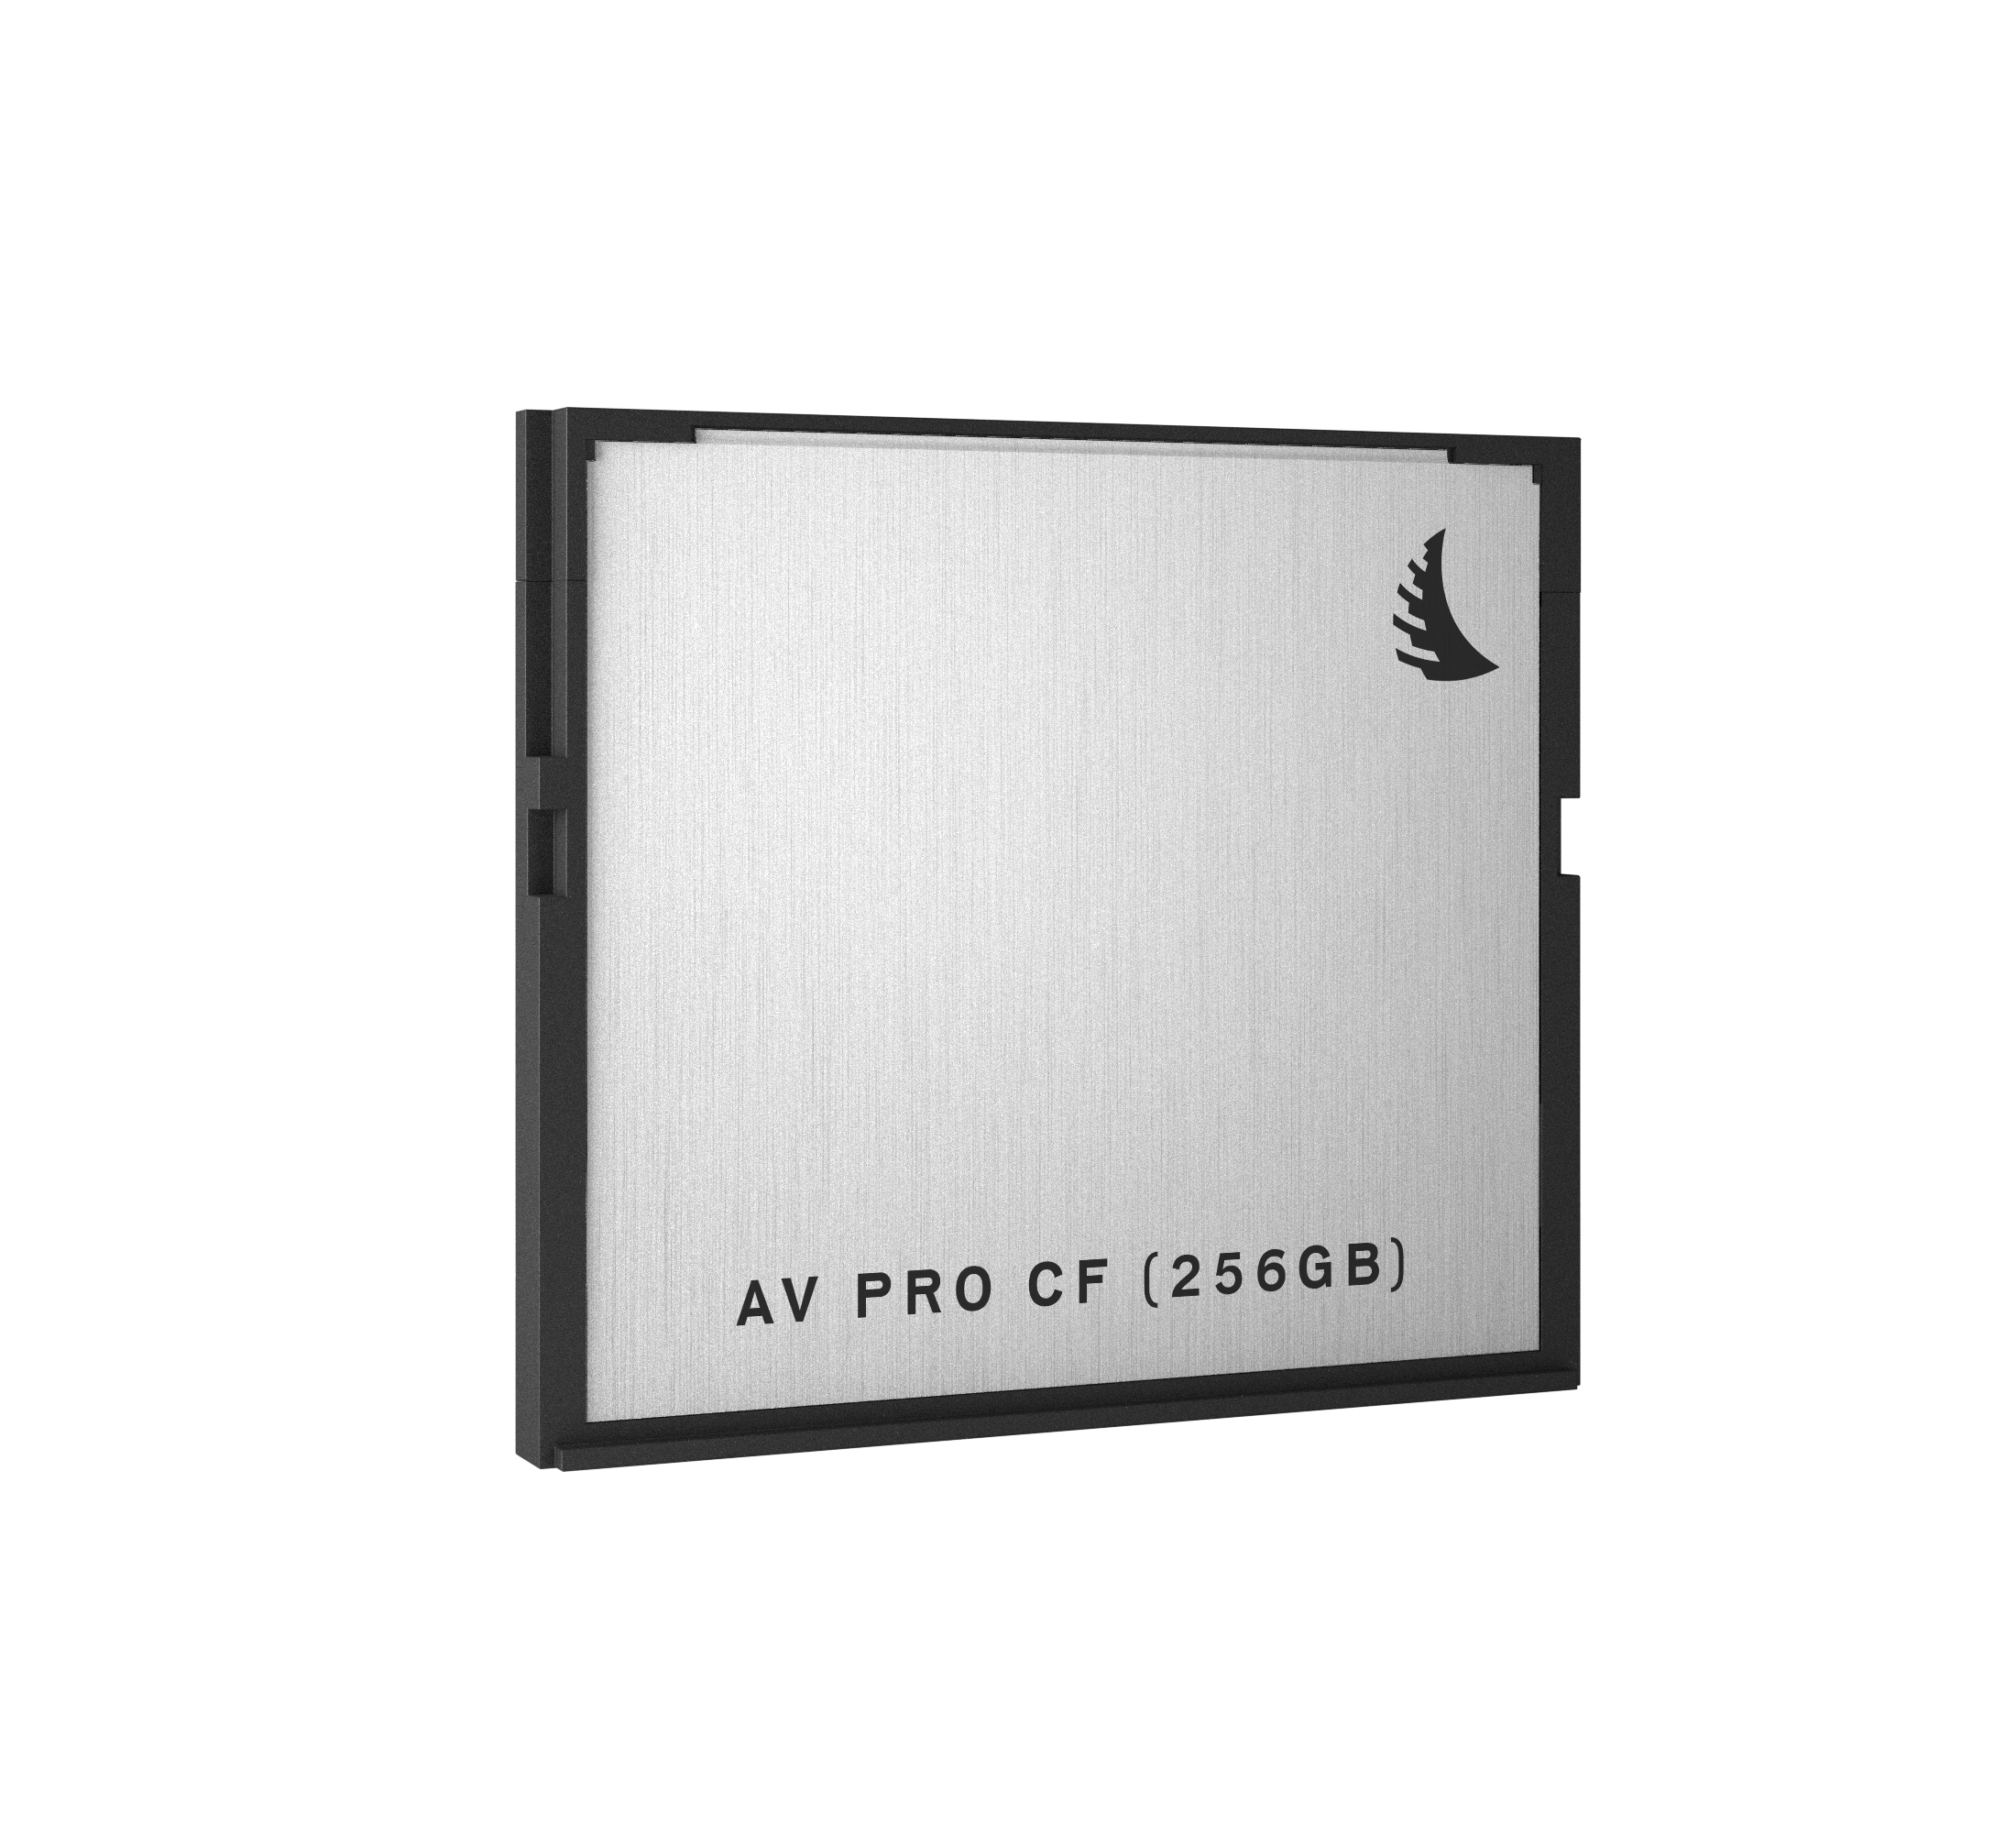 Angel Bird Av Pro Cf 256 Gb Memory Card AVP256CF Digital Media Angel Bird